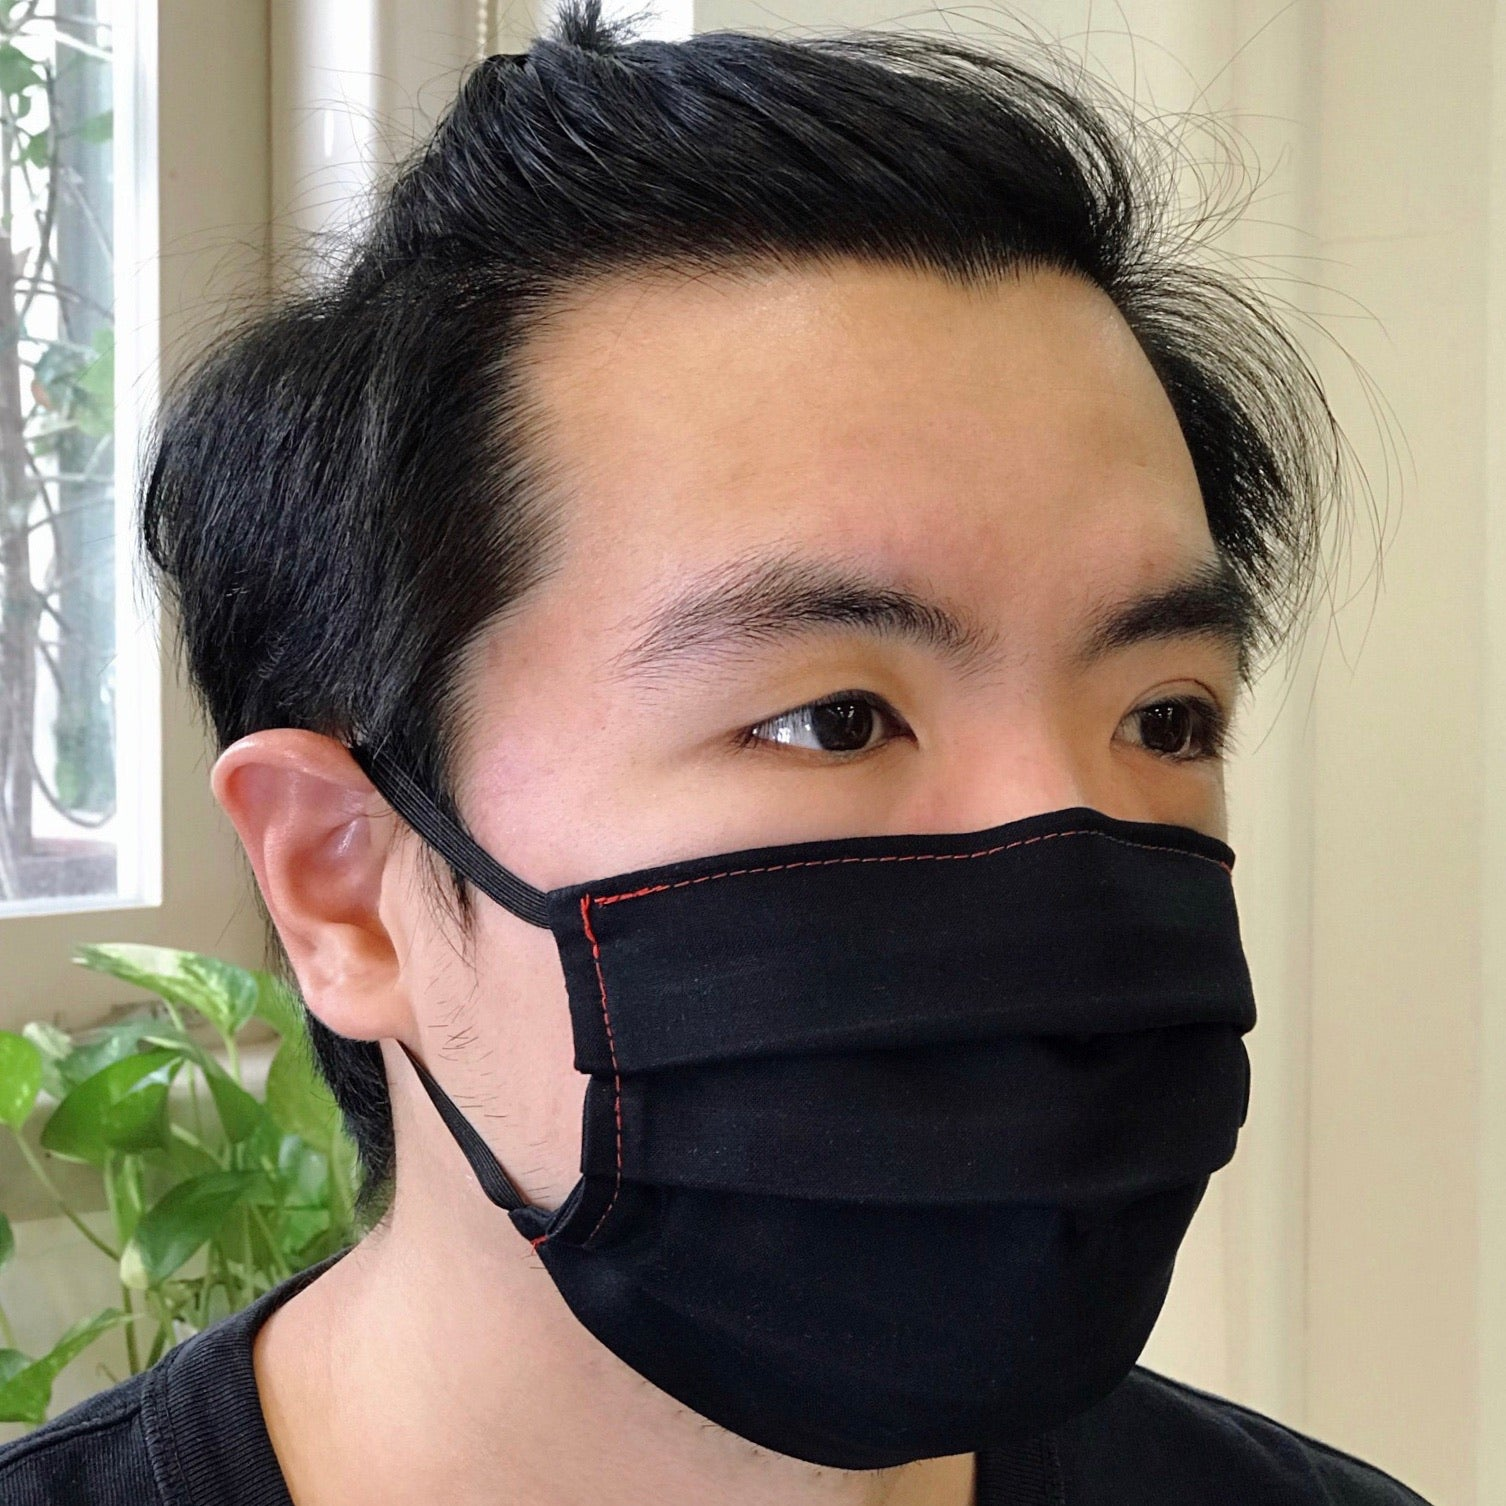 Stealth 100% Premium Cotton Fabric Mask (Pack of 2 Black)